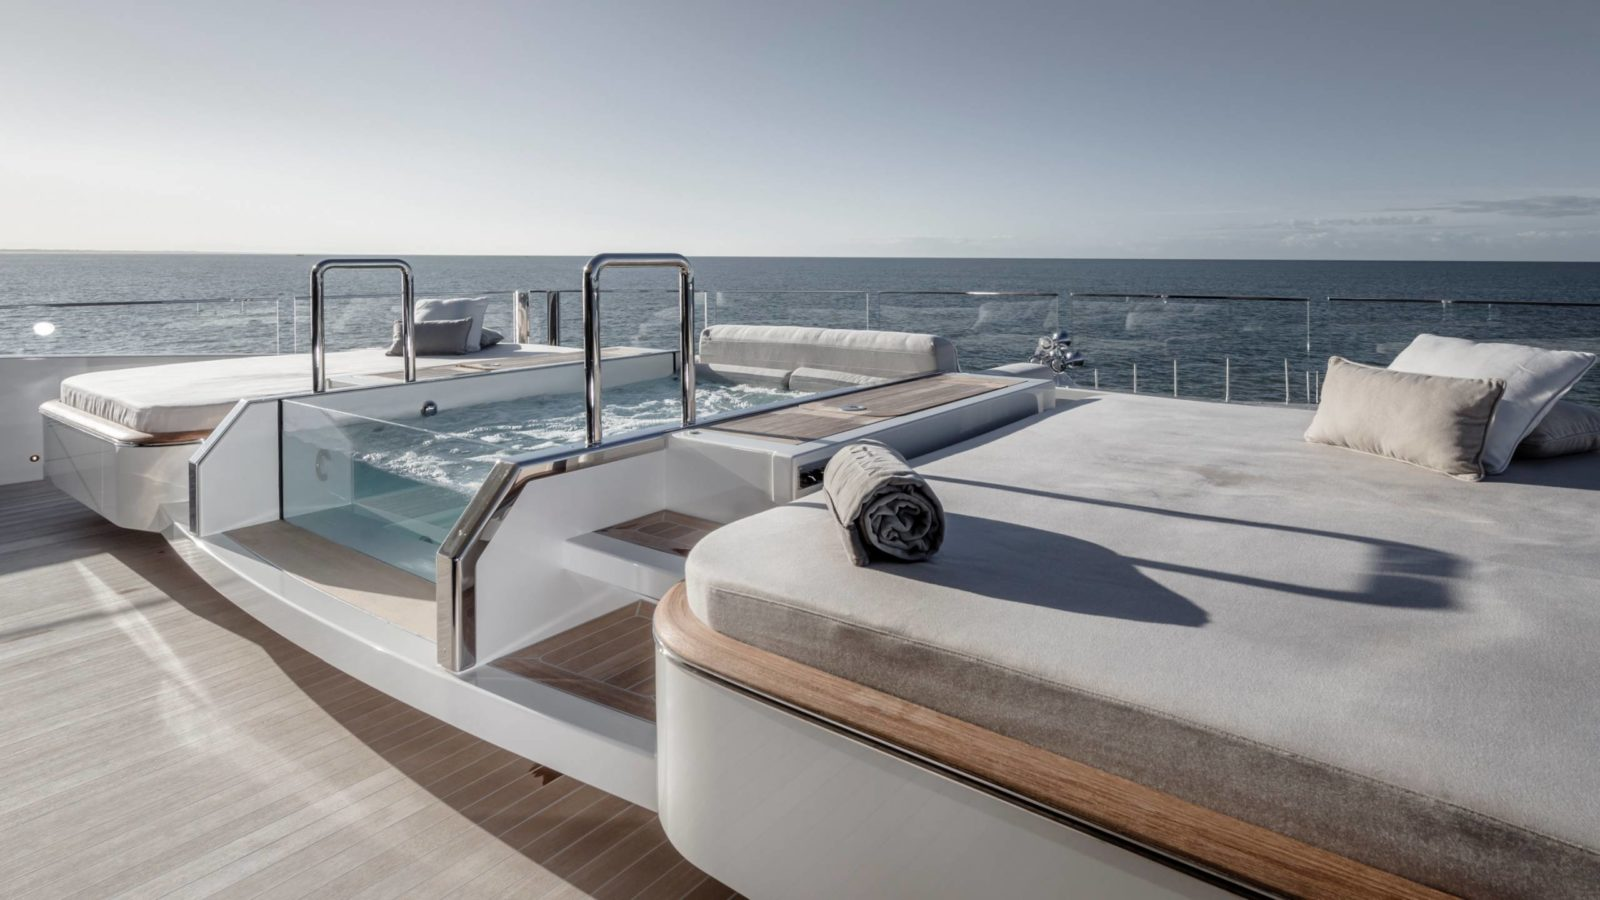 10 of the best yachts to own now in Hong Kong